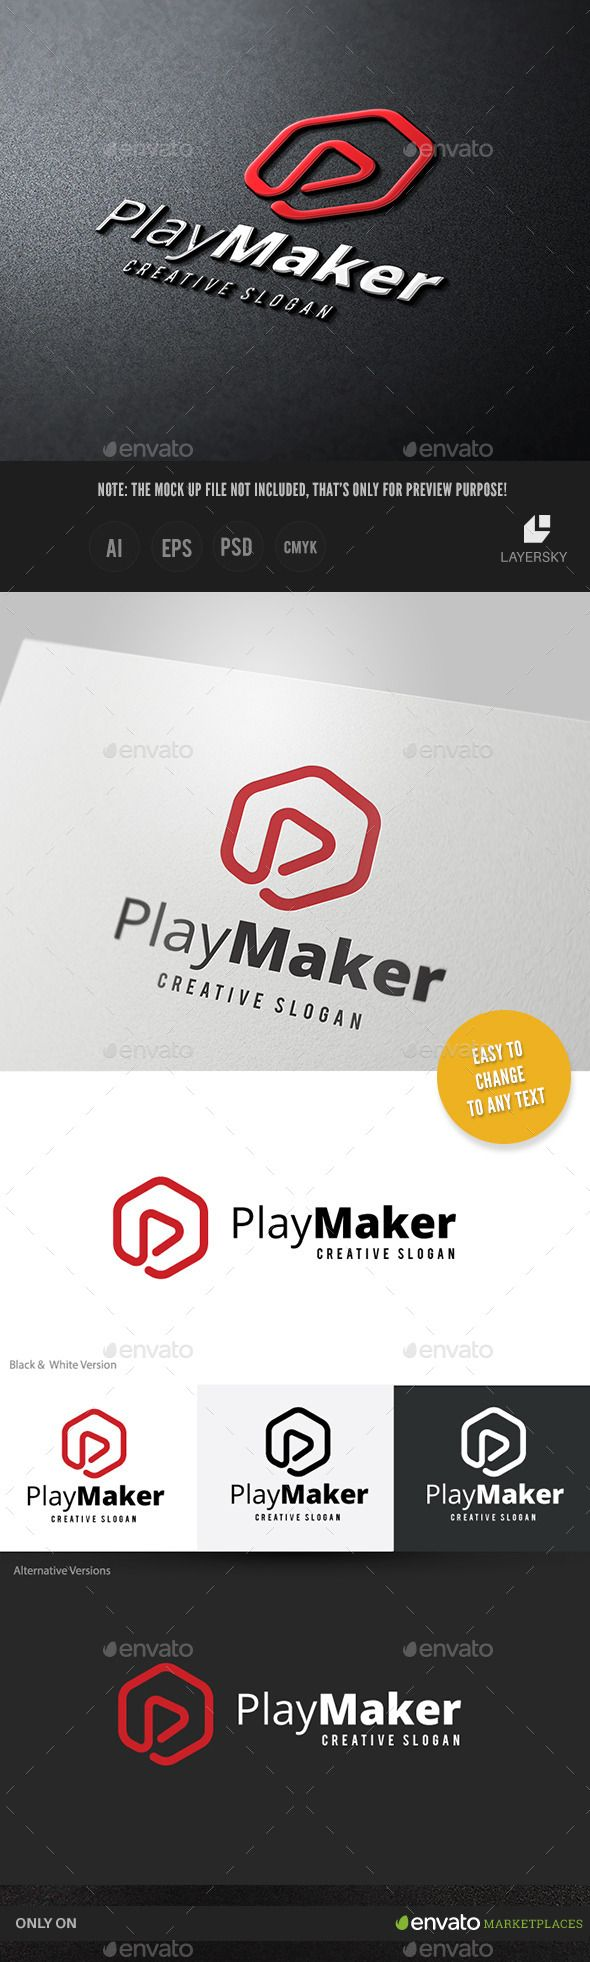 Play Maker — Photoshop PSD #web studio #sing • Available here → https://graphicriver.net/item/play-maker/10994650?ref=pxcr